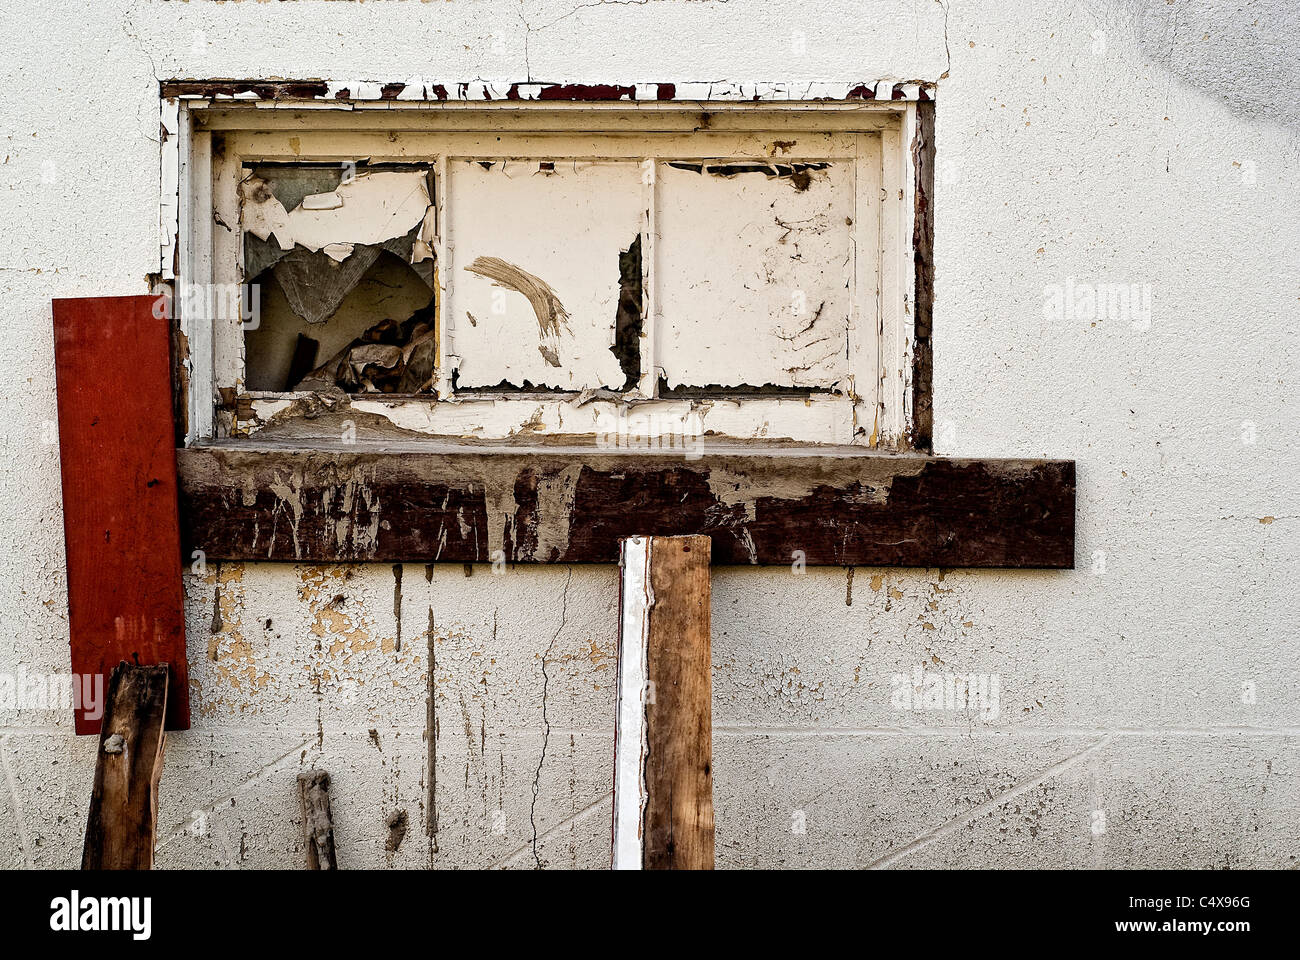 An old window on the white wall of a run-down building. - Stock Image